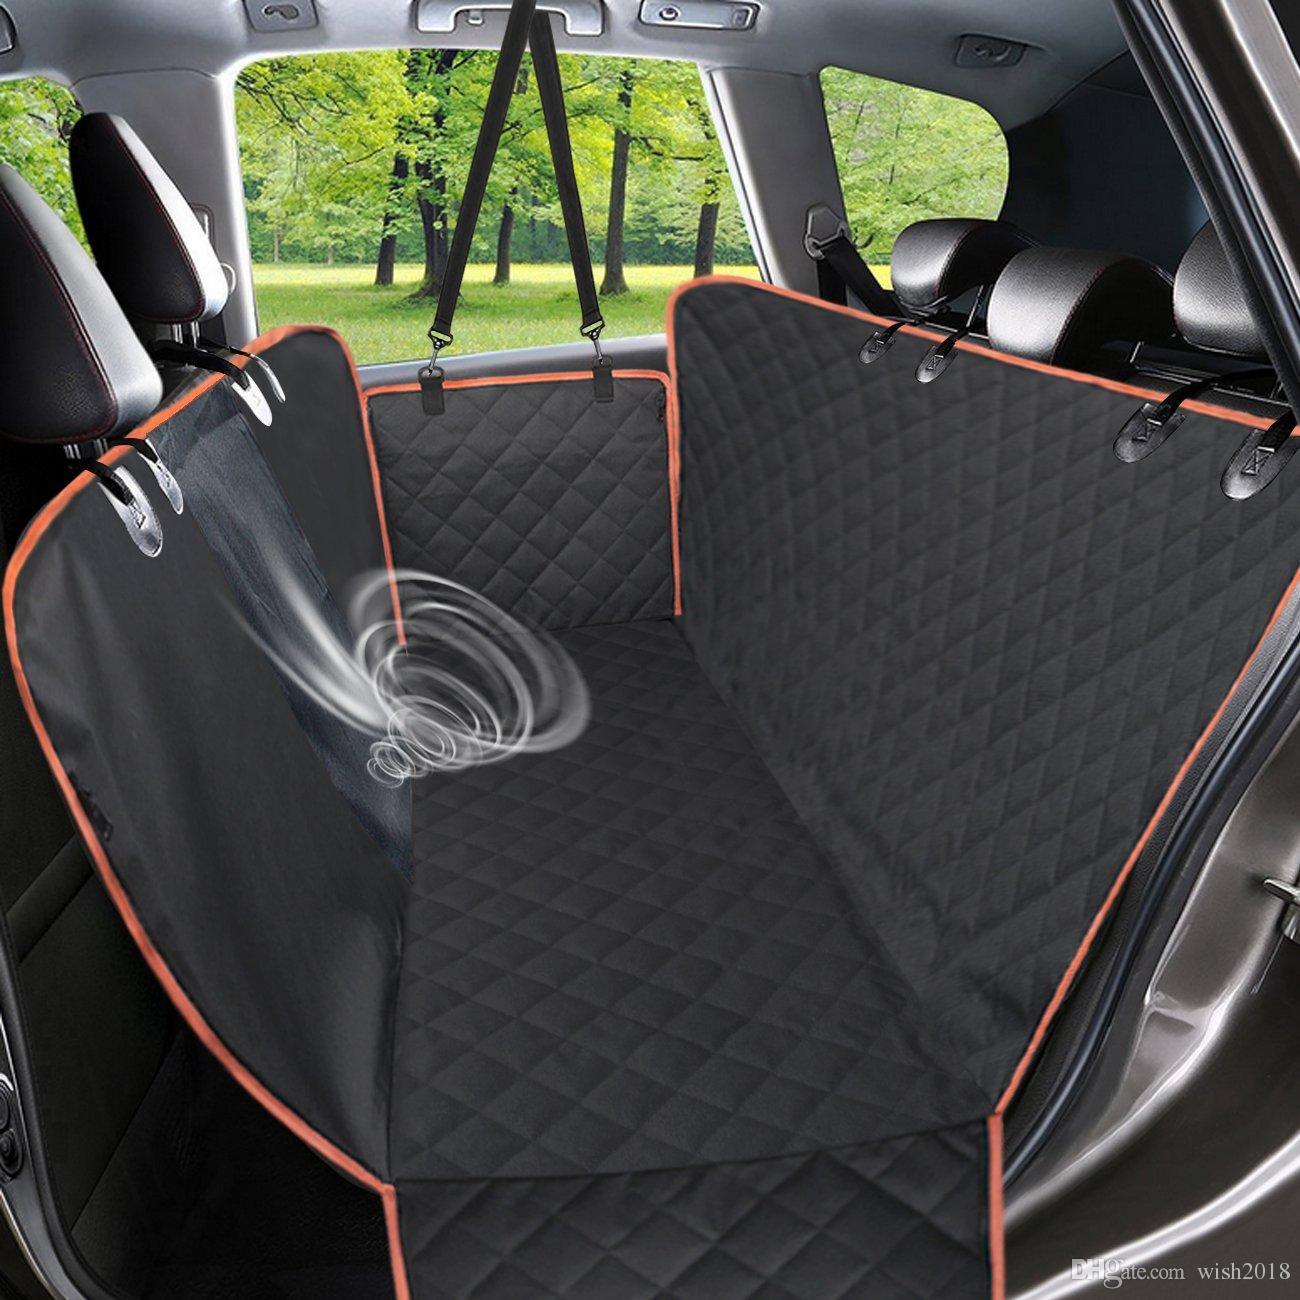 Dog Car Seat Covers For Back Seat Trucks Suv Waterproof Dog Car Hammock With Mesh Window Side Flaps Large Backseat Cover Home & Garden